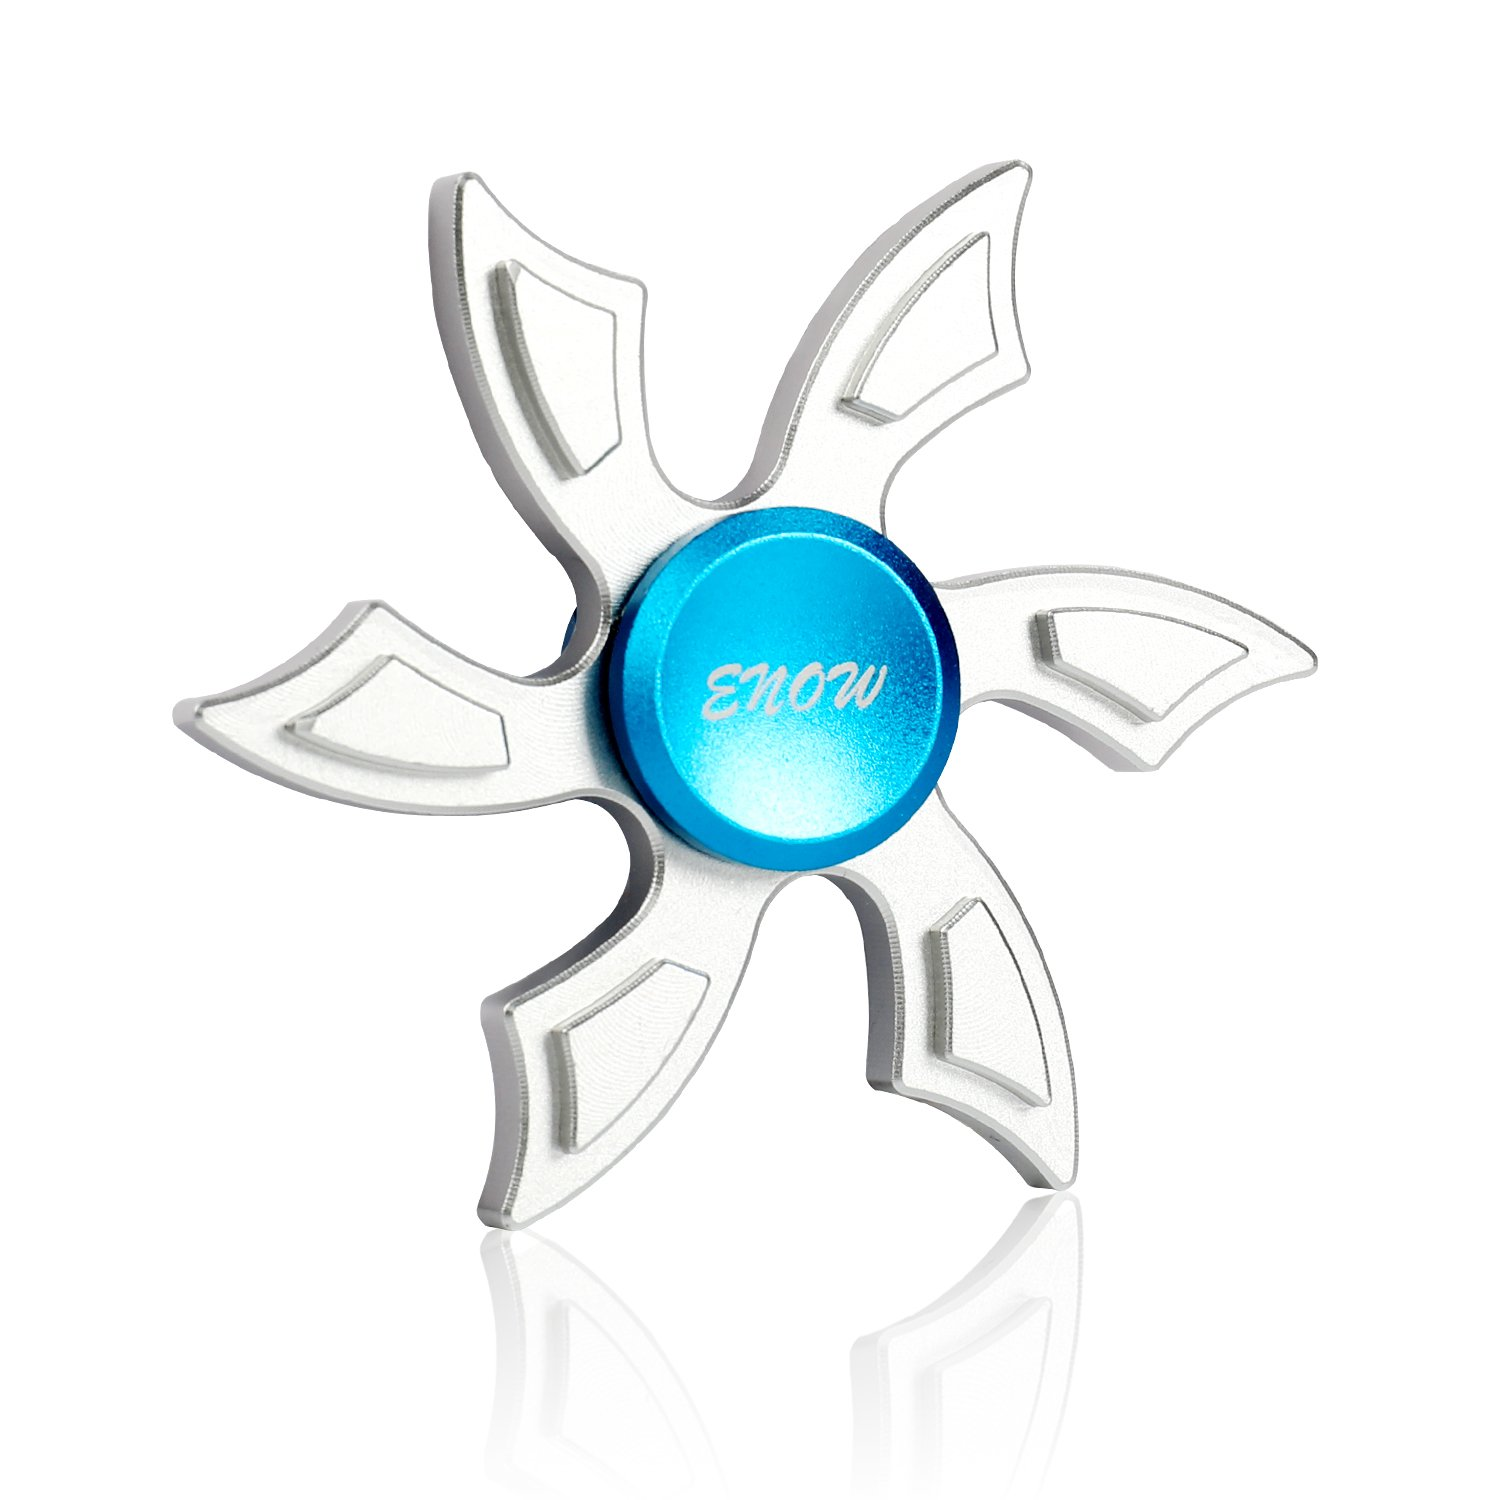 Enow Newest Hands Spinner, Enow Pure Aluminum High Speed Fidget focus toys. Perfect for ADHD, EDC Children and Adults to Increase Concentration, Quit Bad Habits, Spins Metal Average 1-5 Minutes